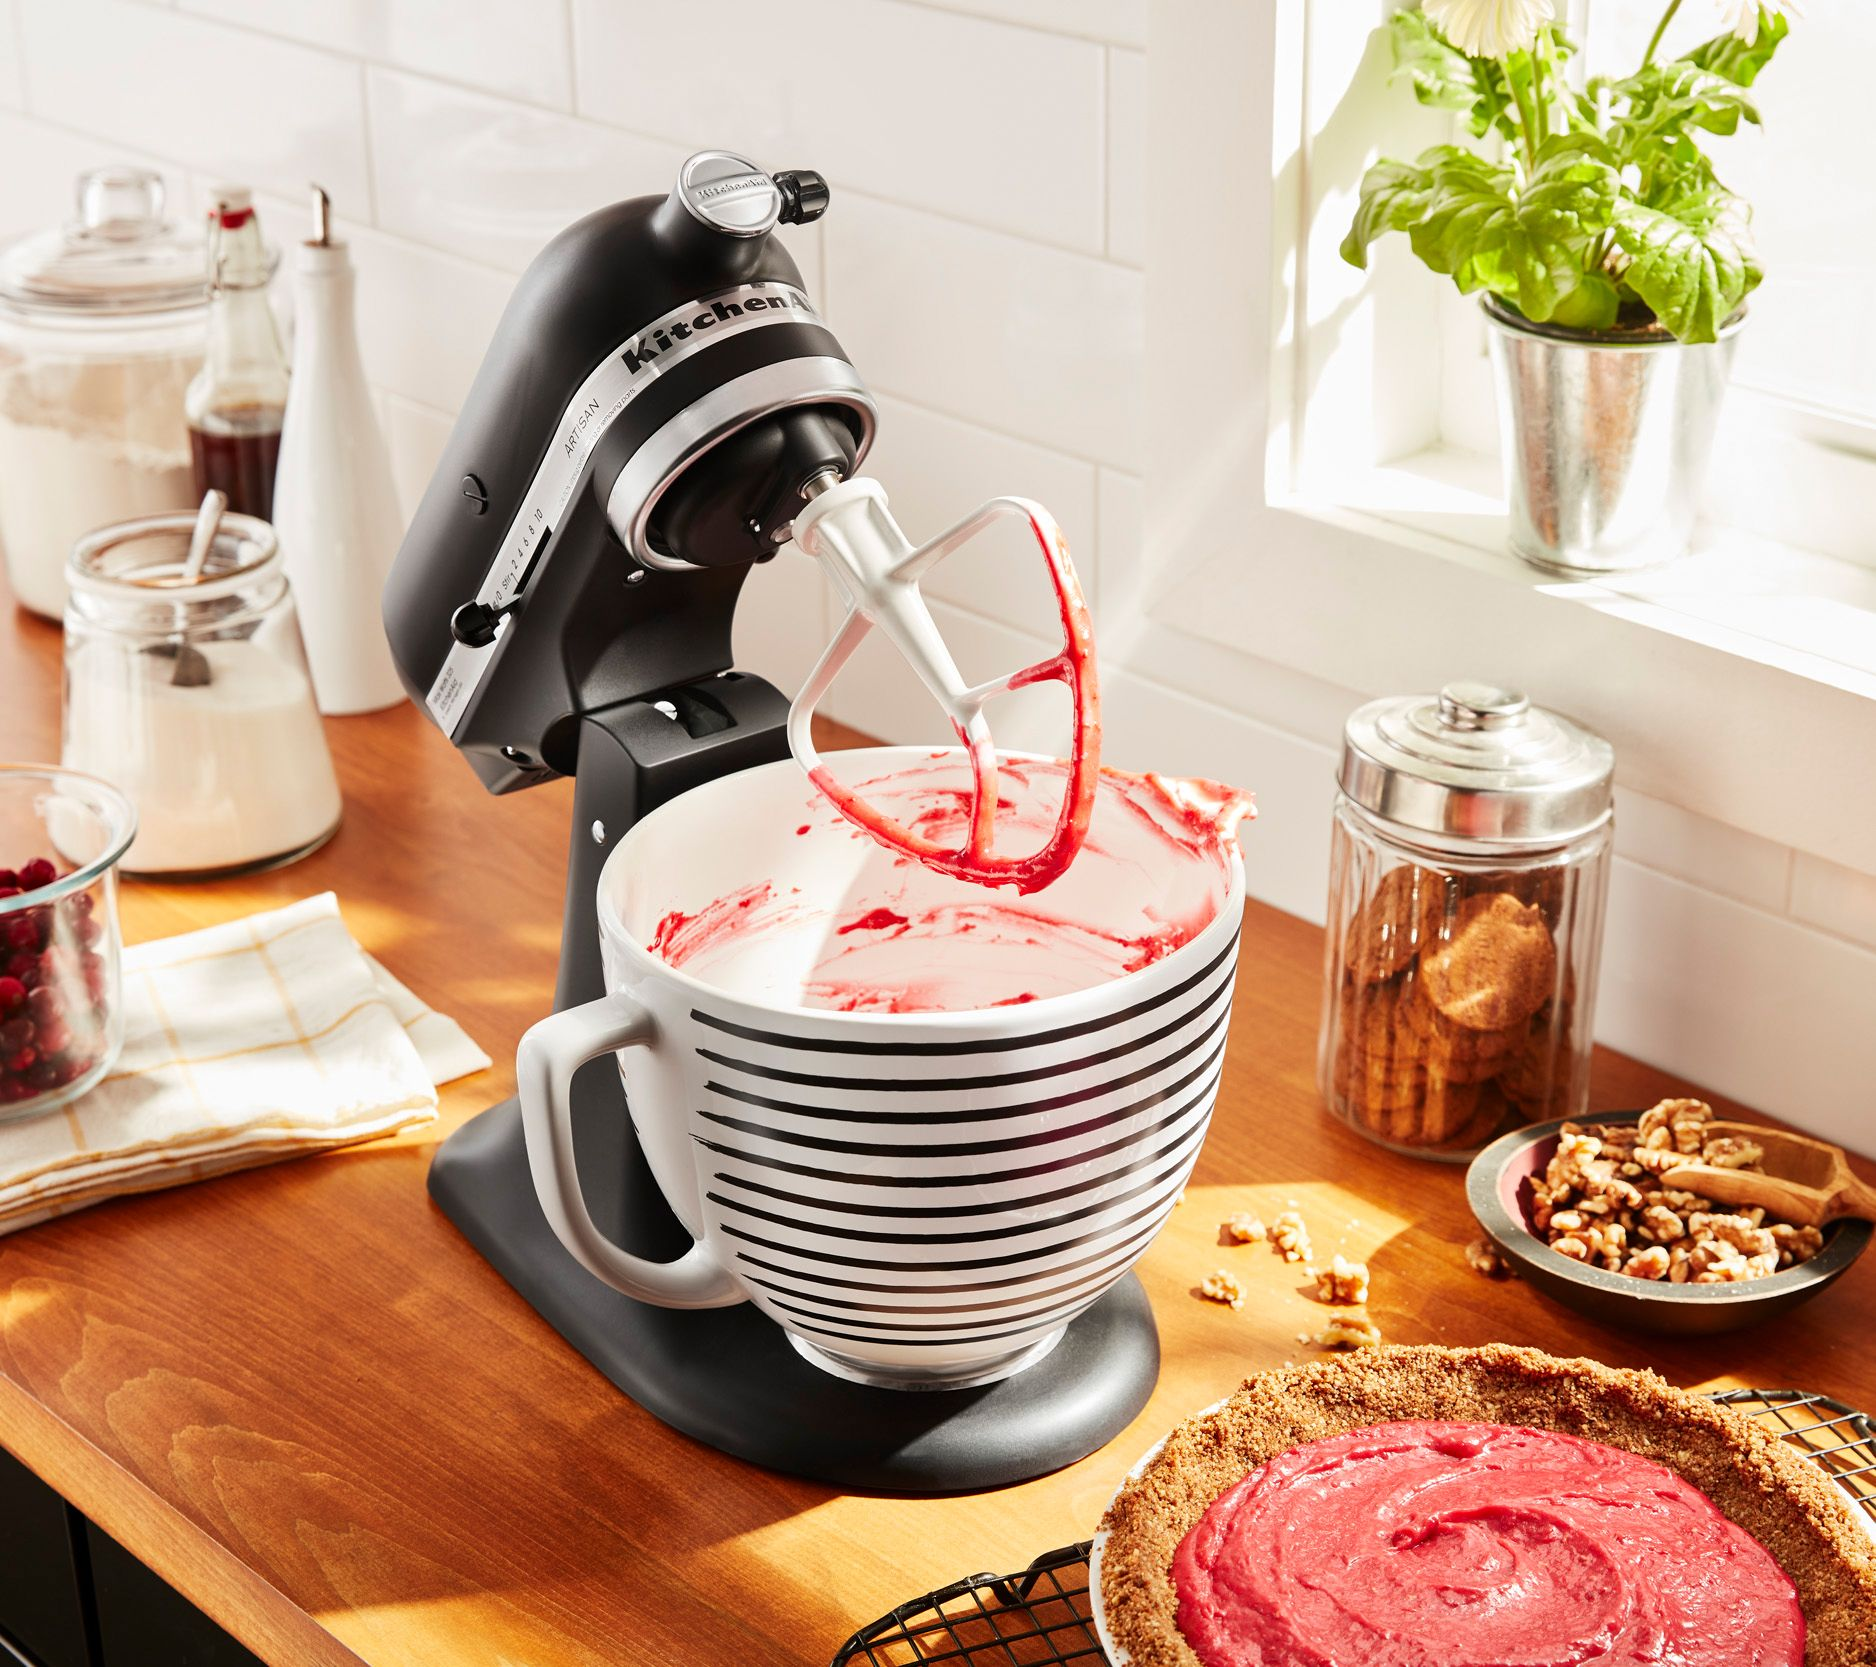 Kitchenaid 5 Qt Patterned Ceramic Stand Mixer Bowl Qvc Com